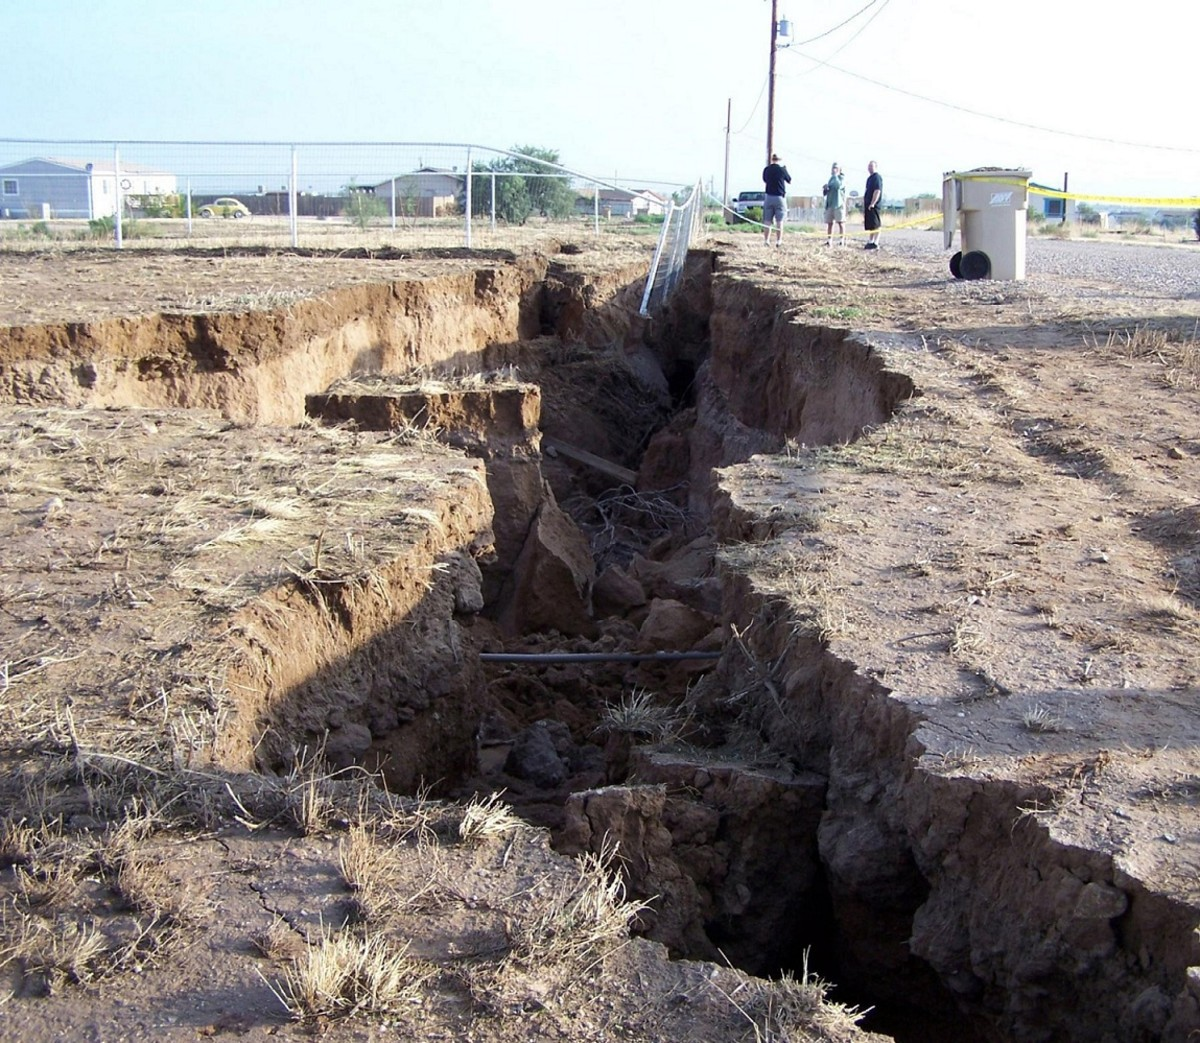 An earth fissure that opened up in Queen Creek Arizona after heavy rains the previous night.